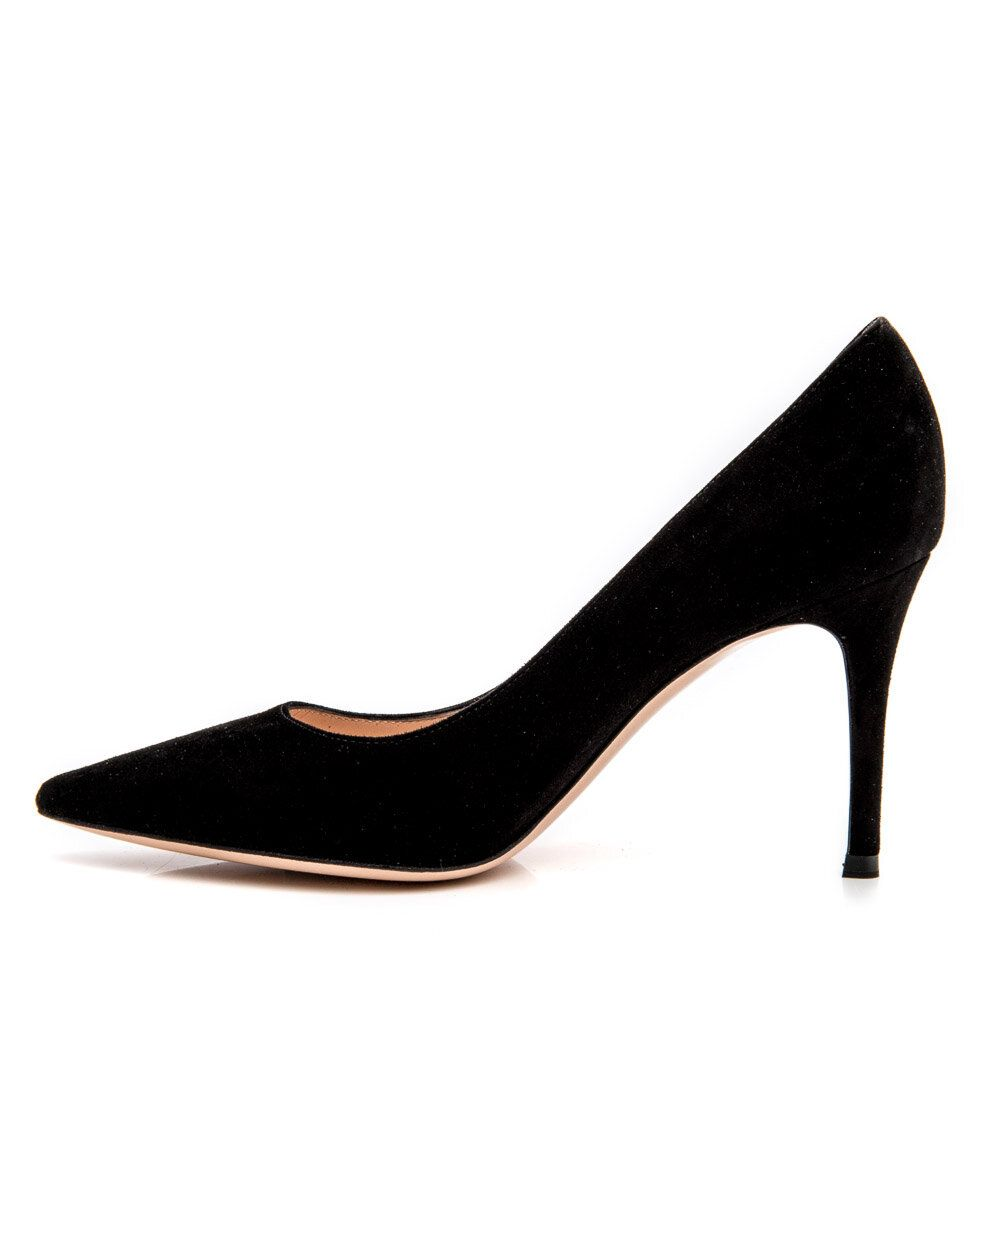 Gianvito Rossi 85 Pointed Toe Pumps In Black Suede In 2020 Stiletto Heels Pointed Toe Pumps Heels